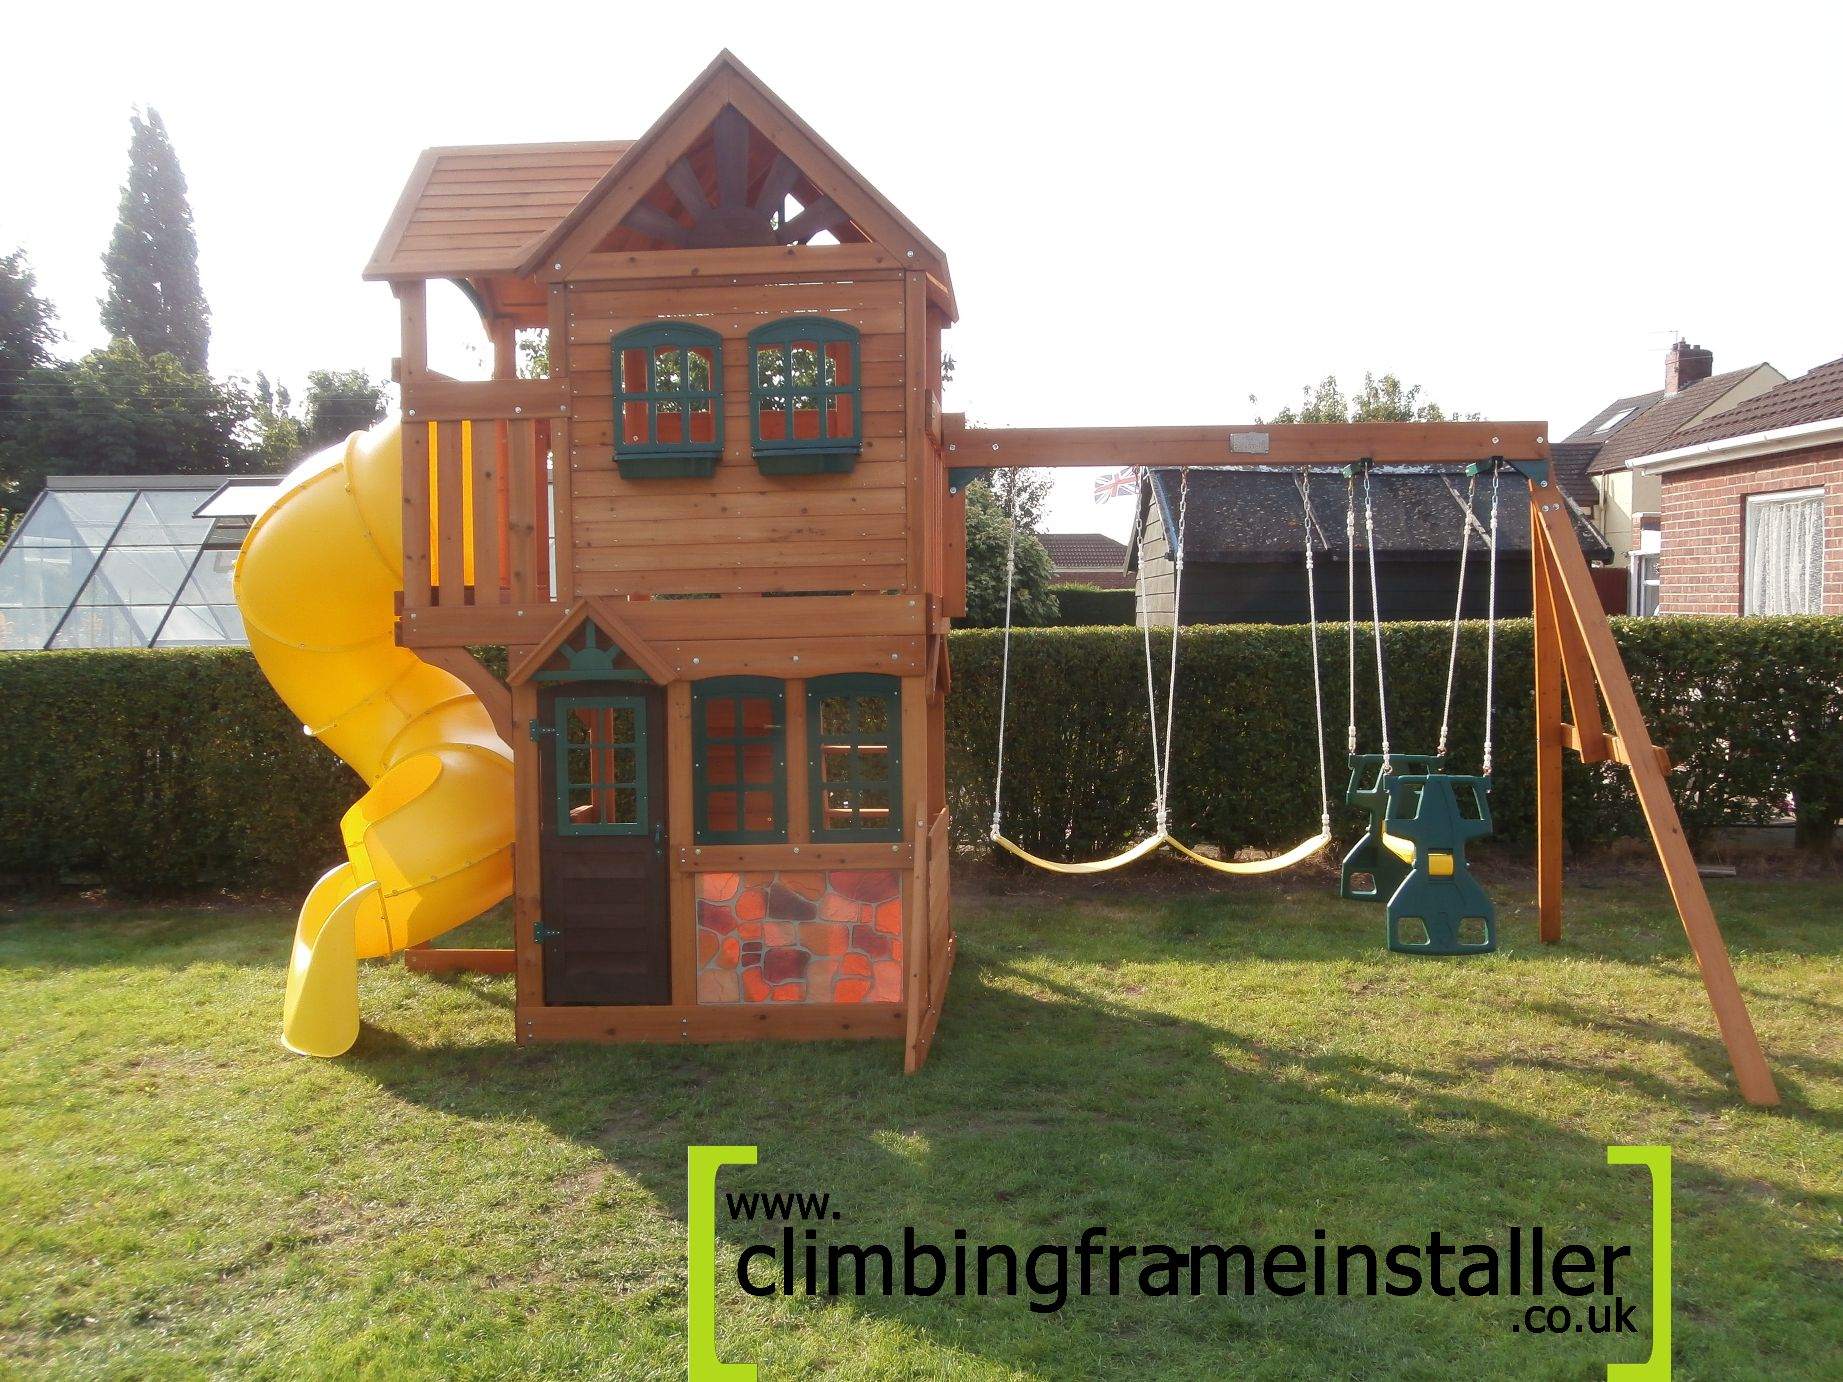 garden play equipment climbing frame installer. Black Bedroom Furniture Sets. Home Design Ideas